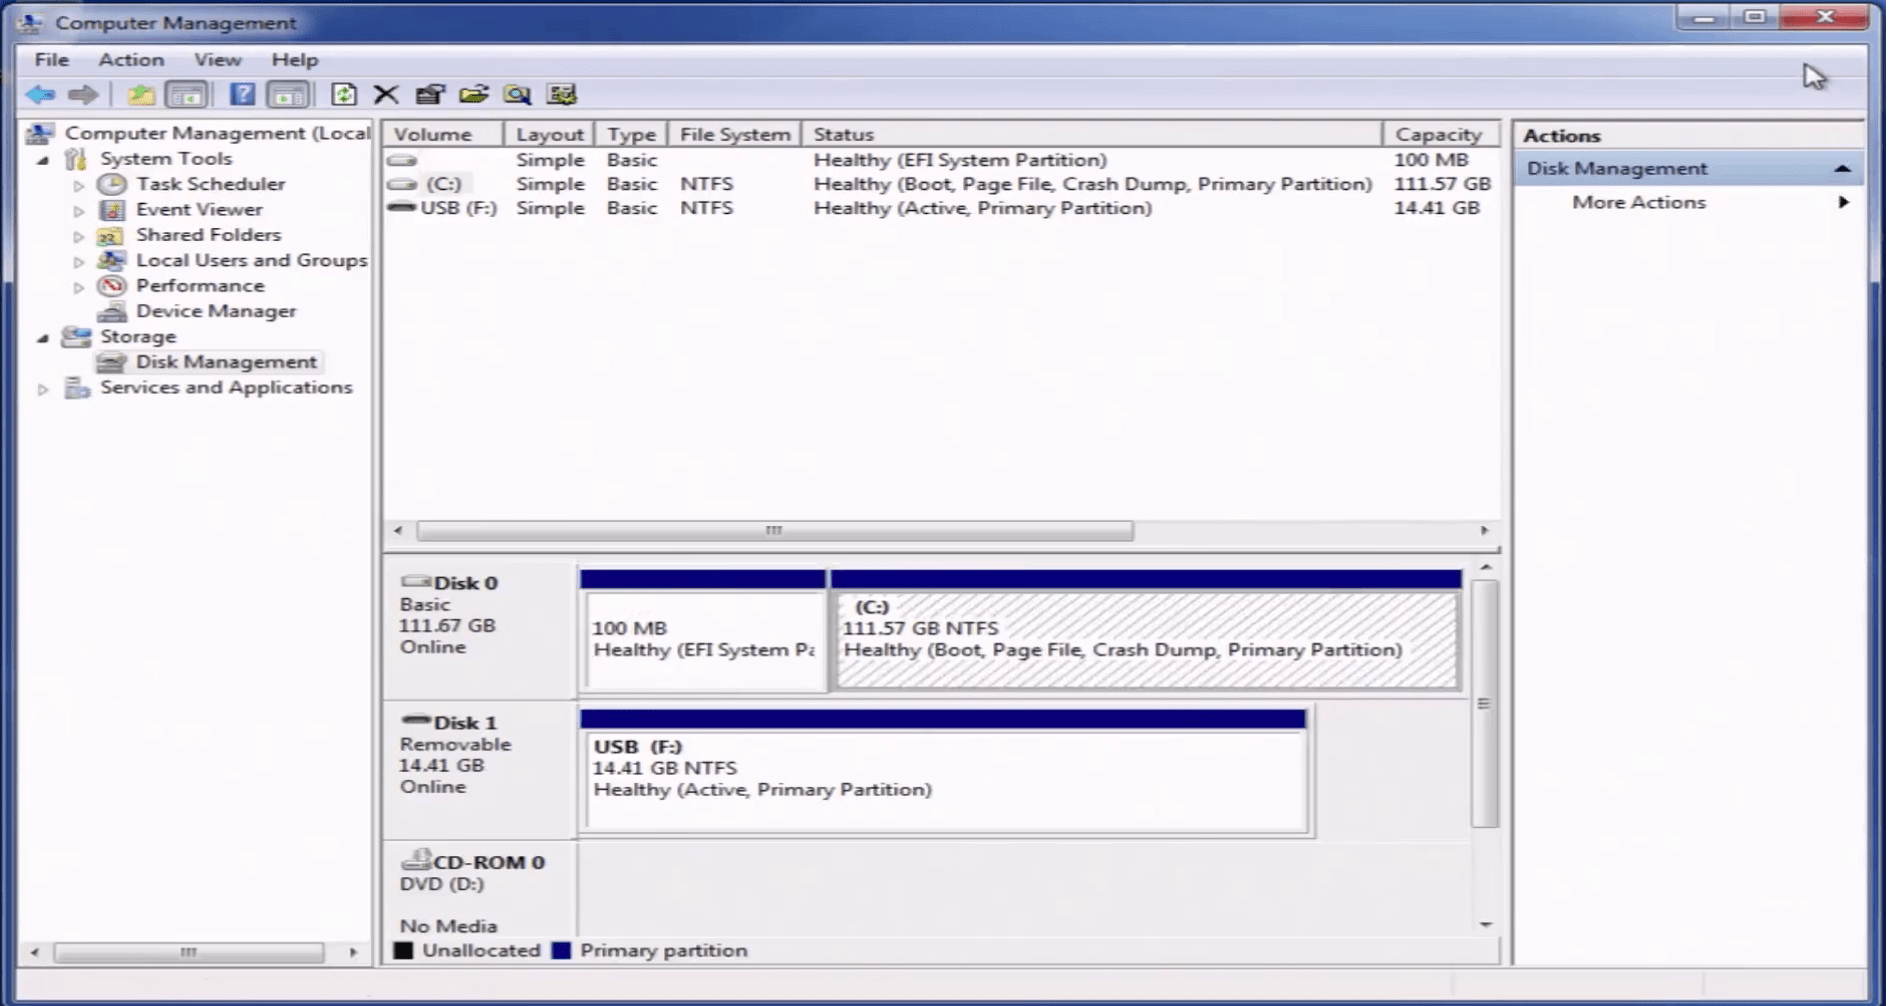 Dell Backup and Recovery 1 9 2 8 - Windows 7 and 8 1 (Clean Install